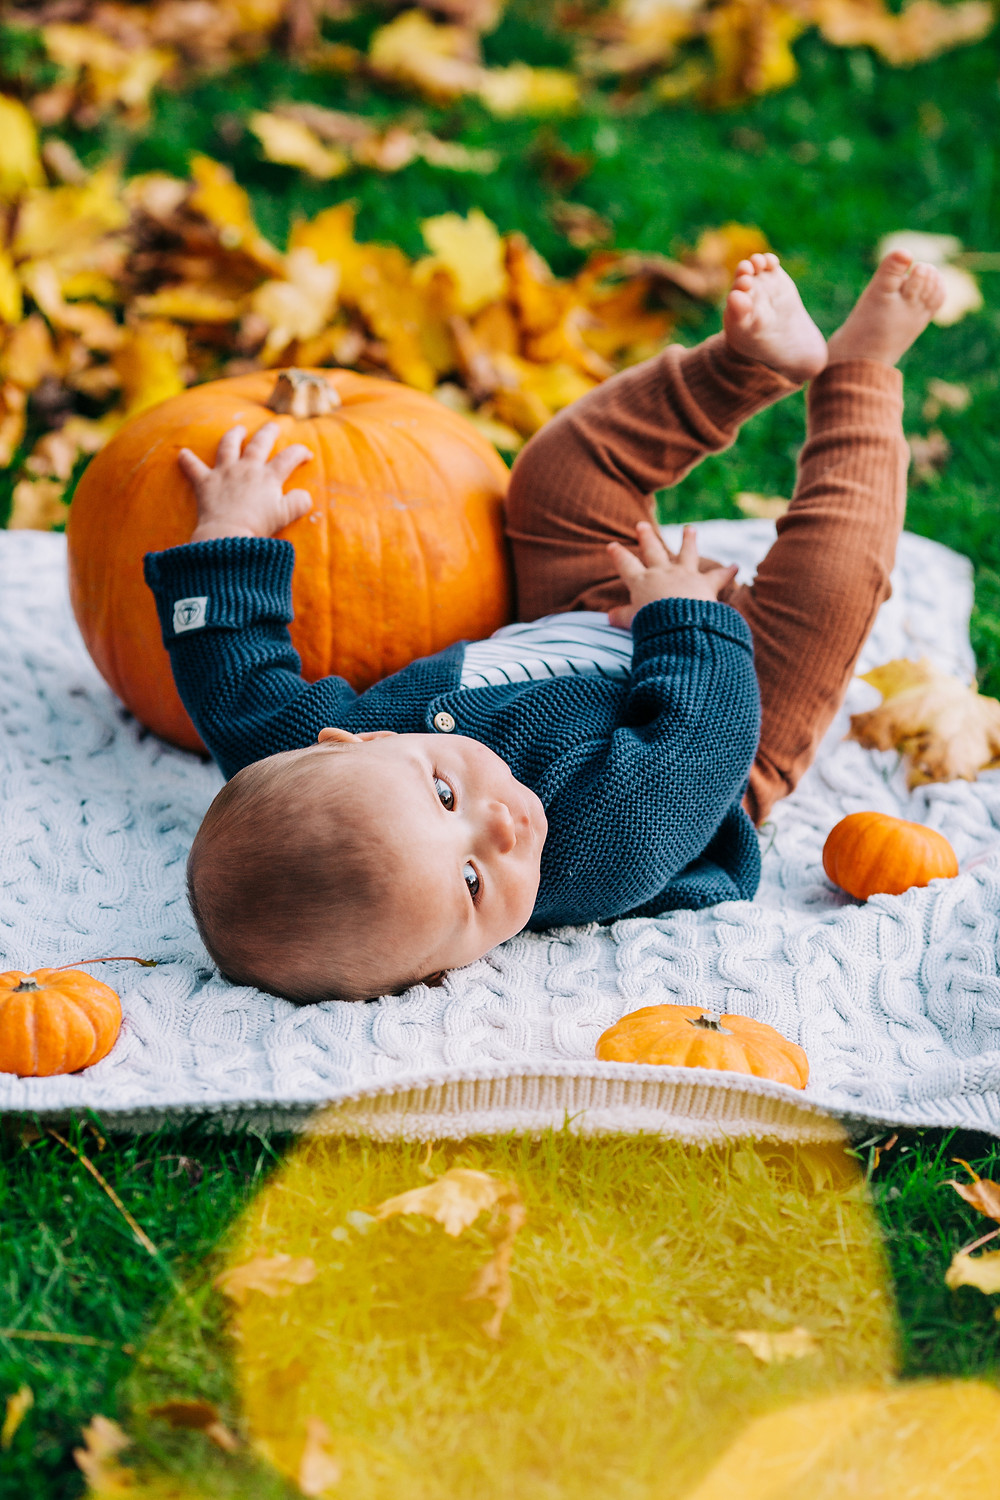 Baby lying on blanket, surrounded by pumpkins and autumnal leaves in Heaton Park, Newcastle